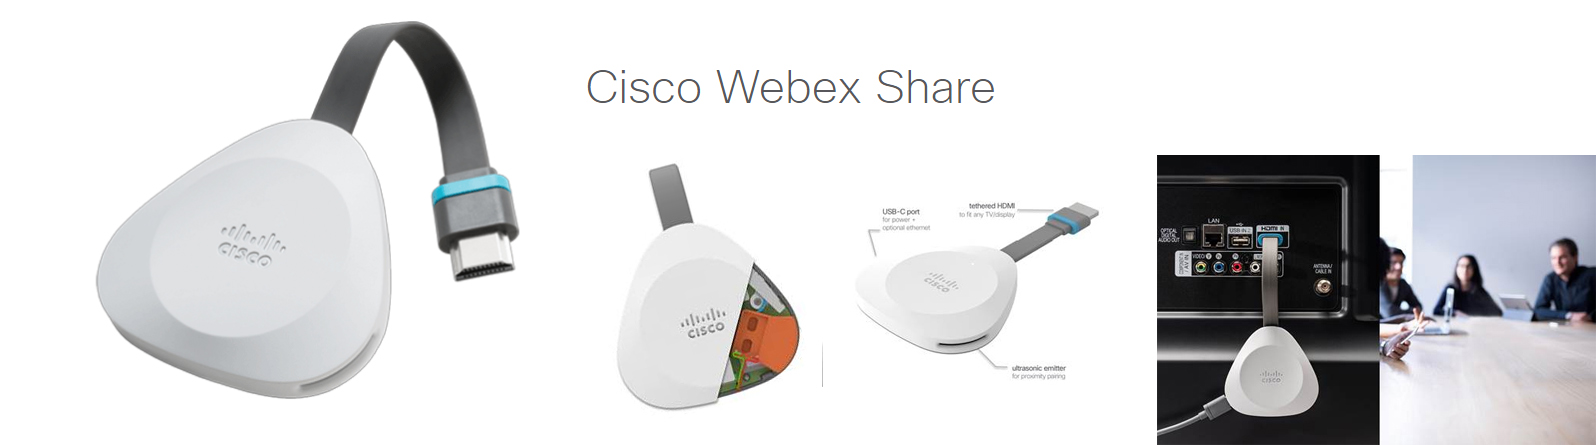 Cisco Webex Share provides high-quality, cable-free content